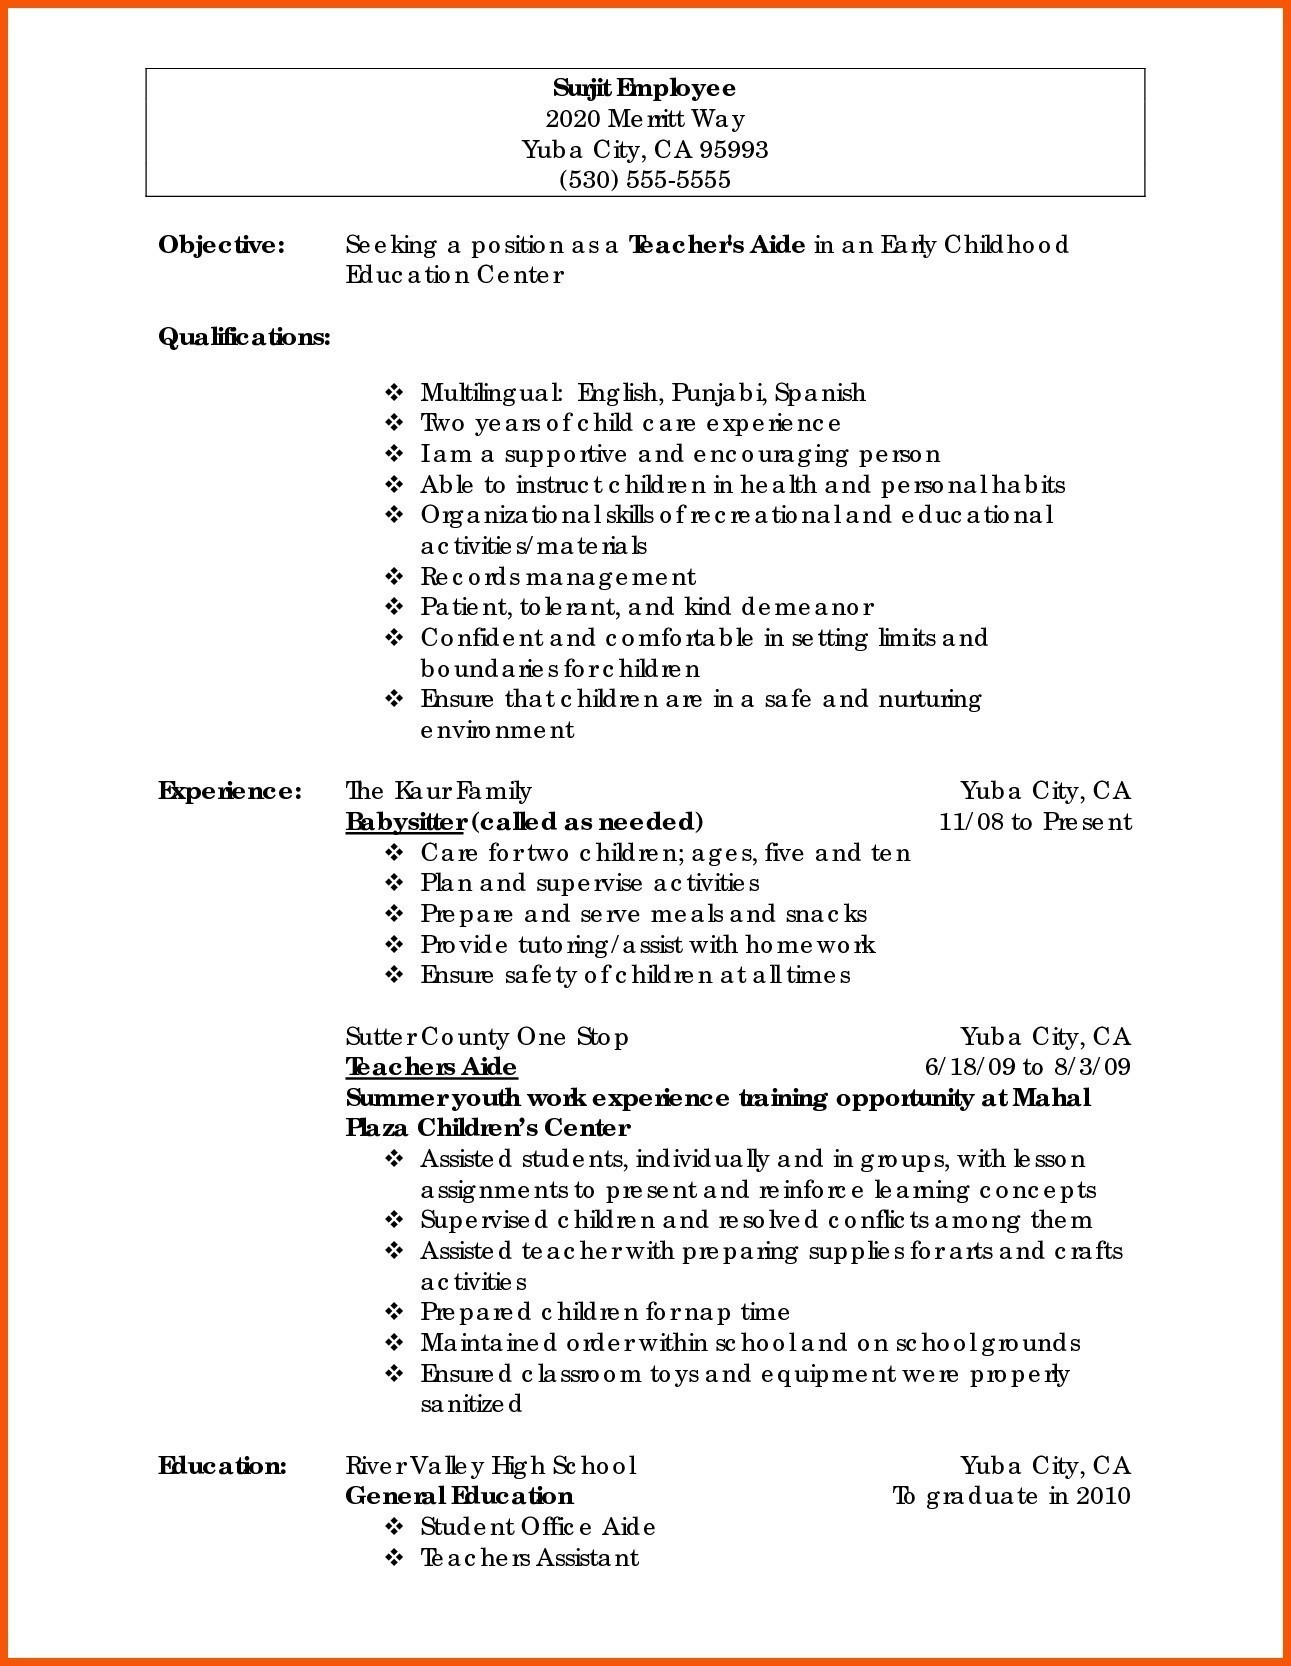 Shipping and Receiving Duties Resume - 20 Shipping and Receiving Duties Resume